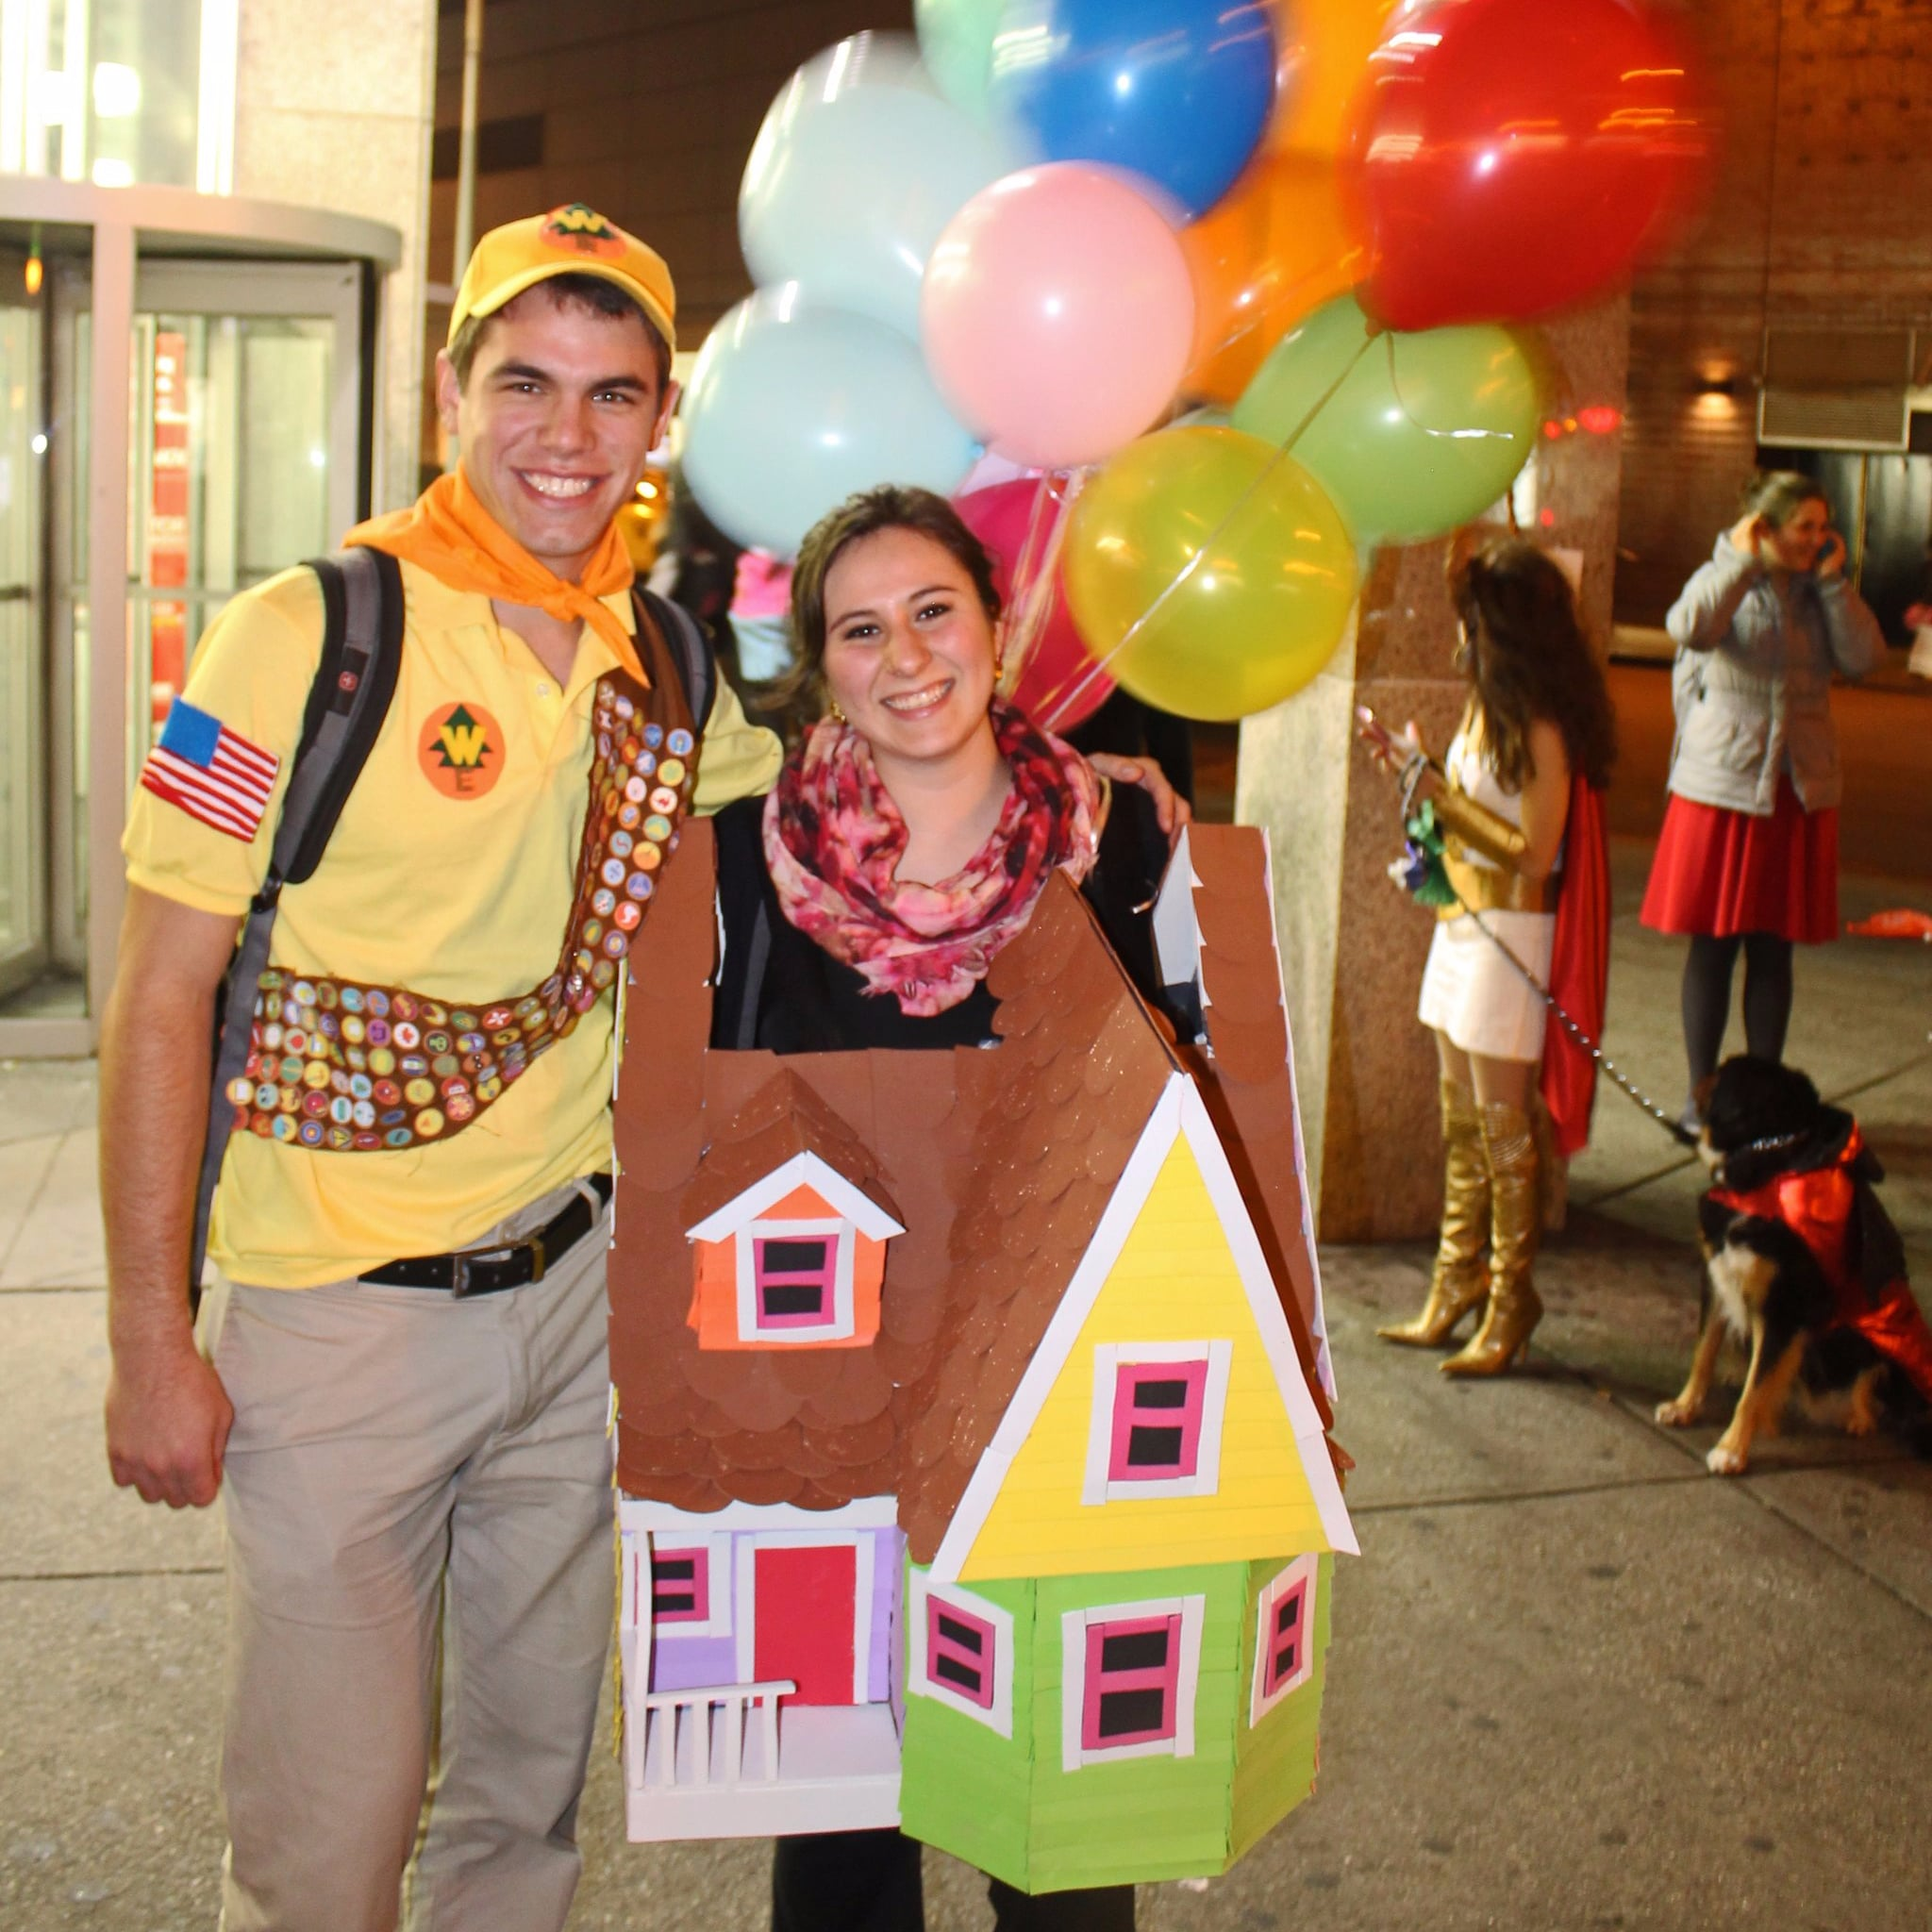 Cheap diy couples halloween costumes popsugar smart living solutioingenieria Image collections